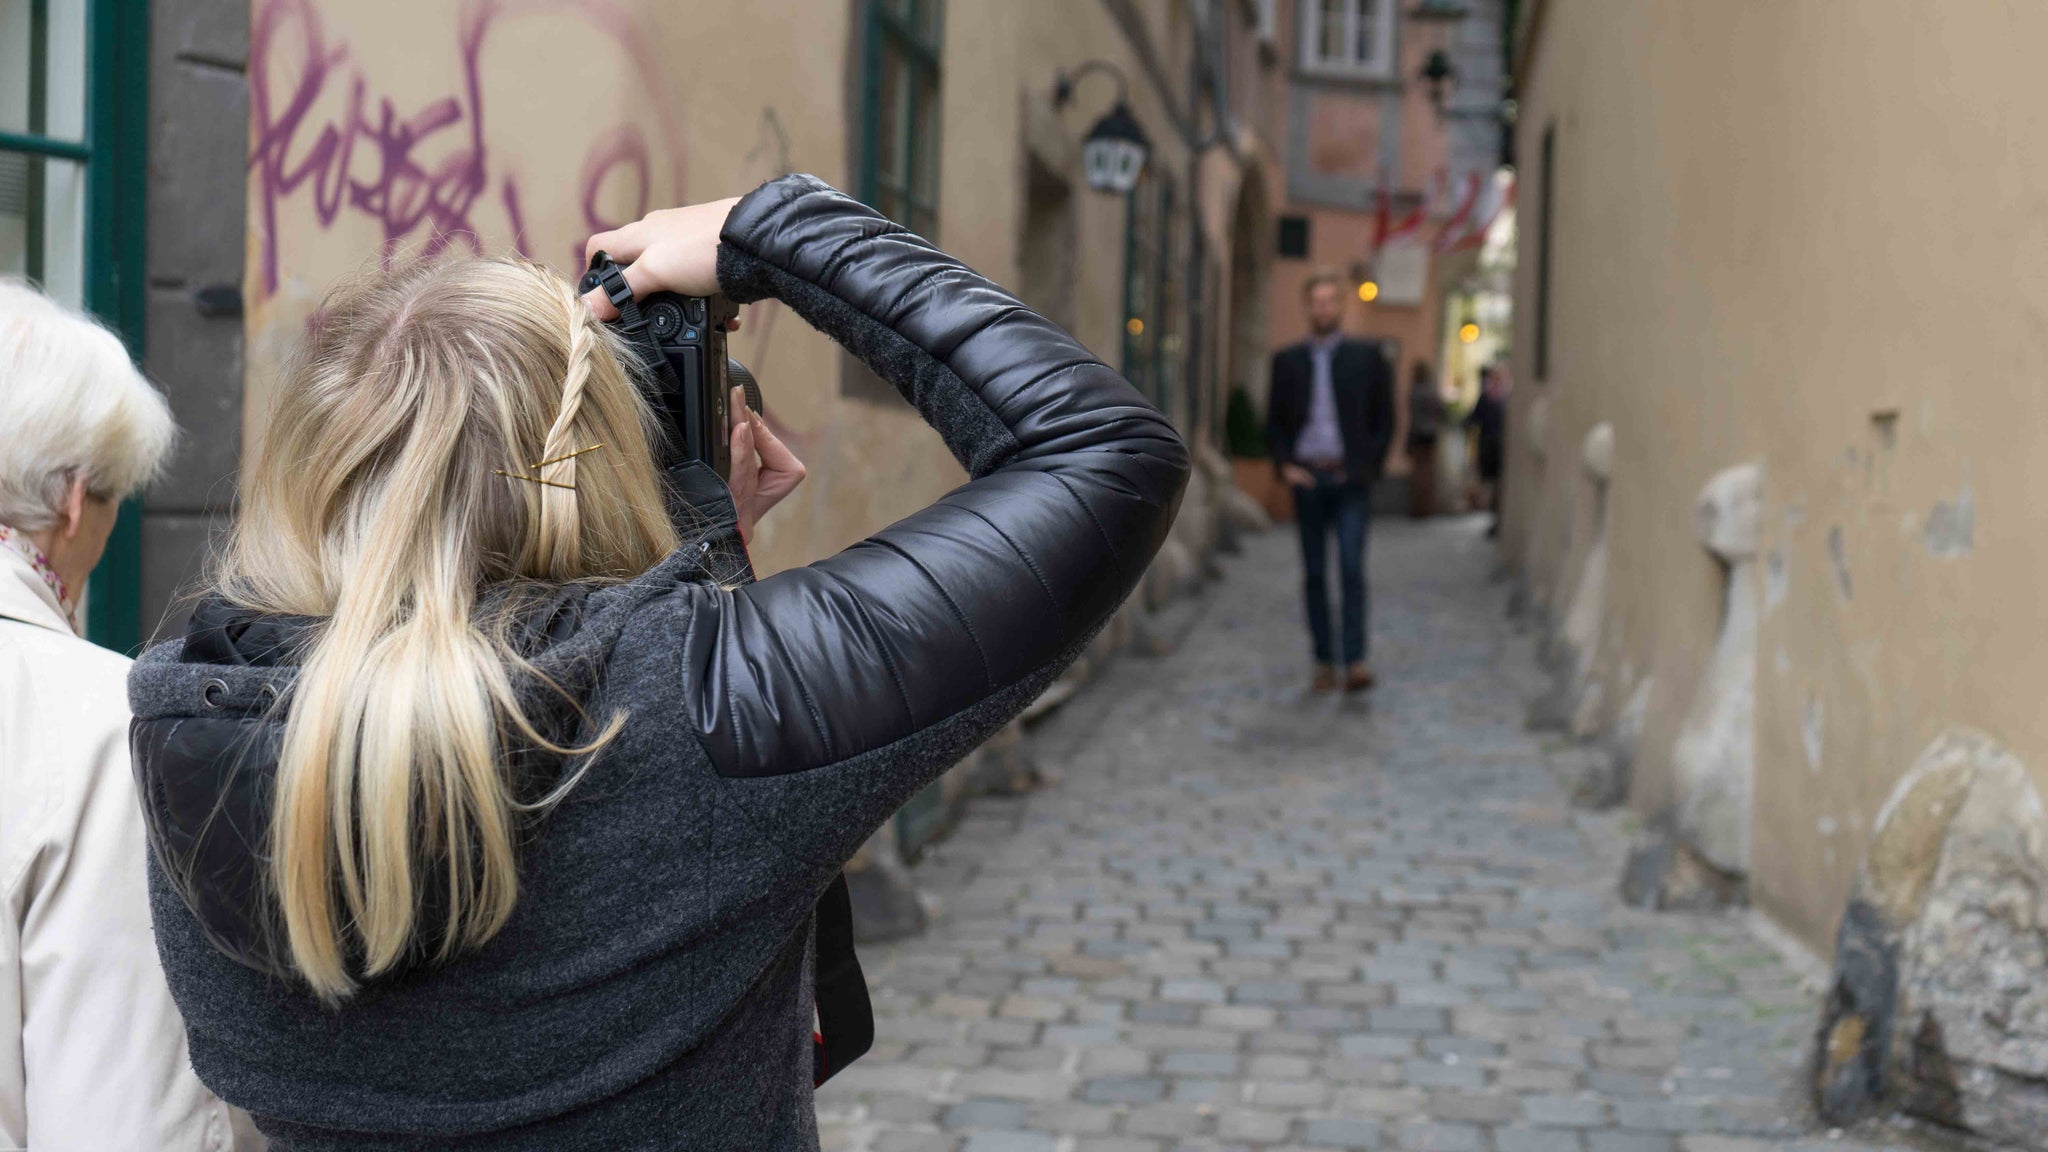 Photographer Astrid Schweyer taking a picture in the old city of Vienna on October 8th 2016 for Robert W. Stolz jacket photo shoot